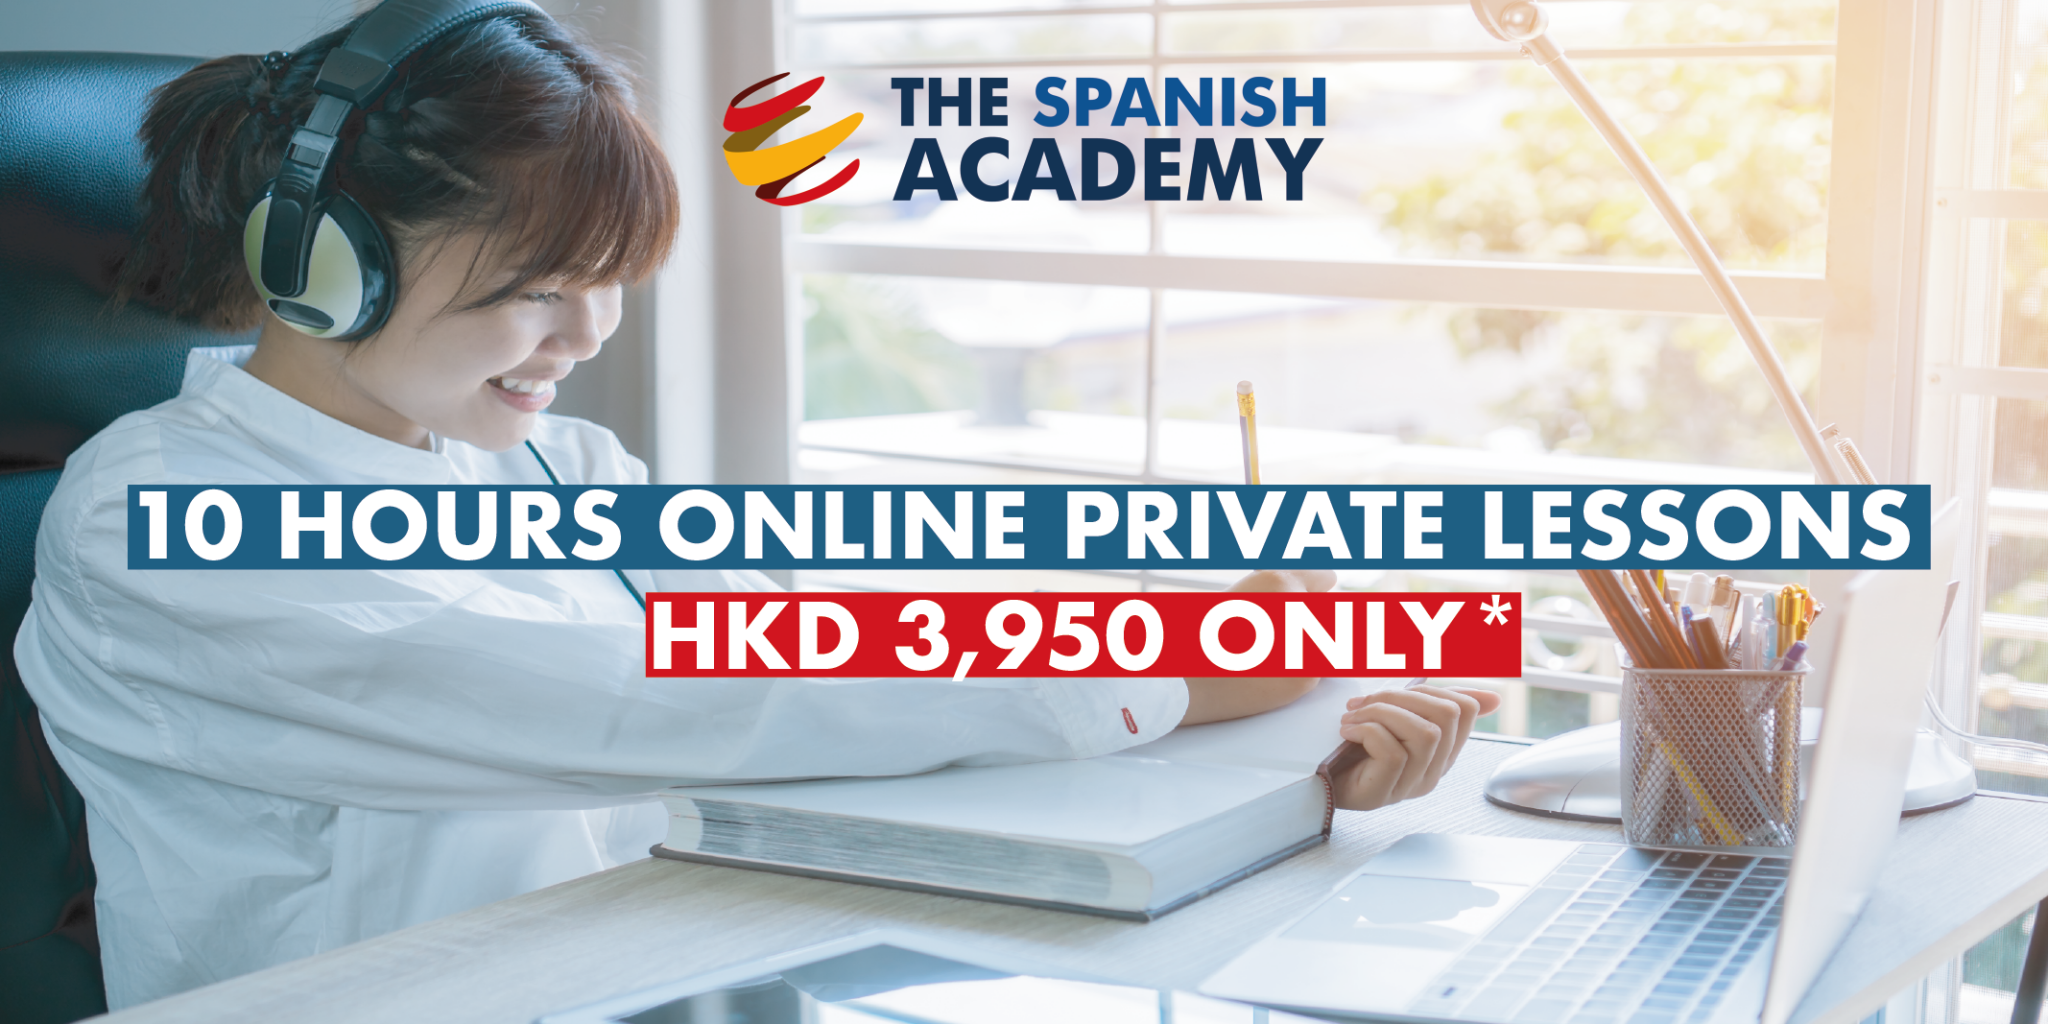 Online Private Lessons Promotion